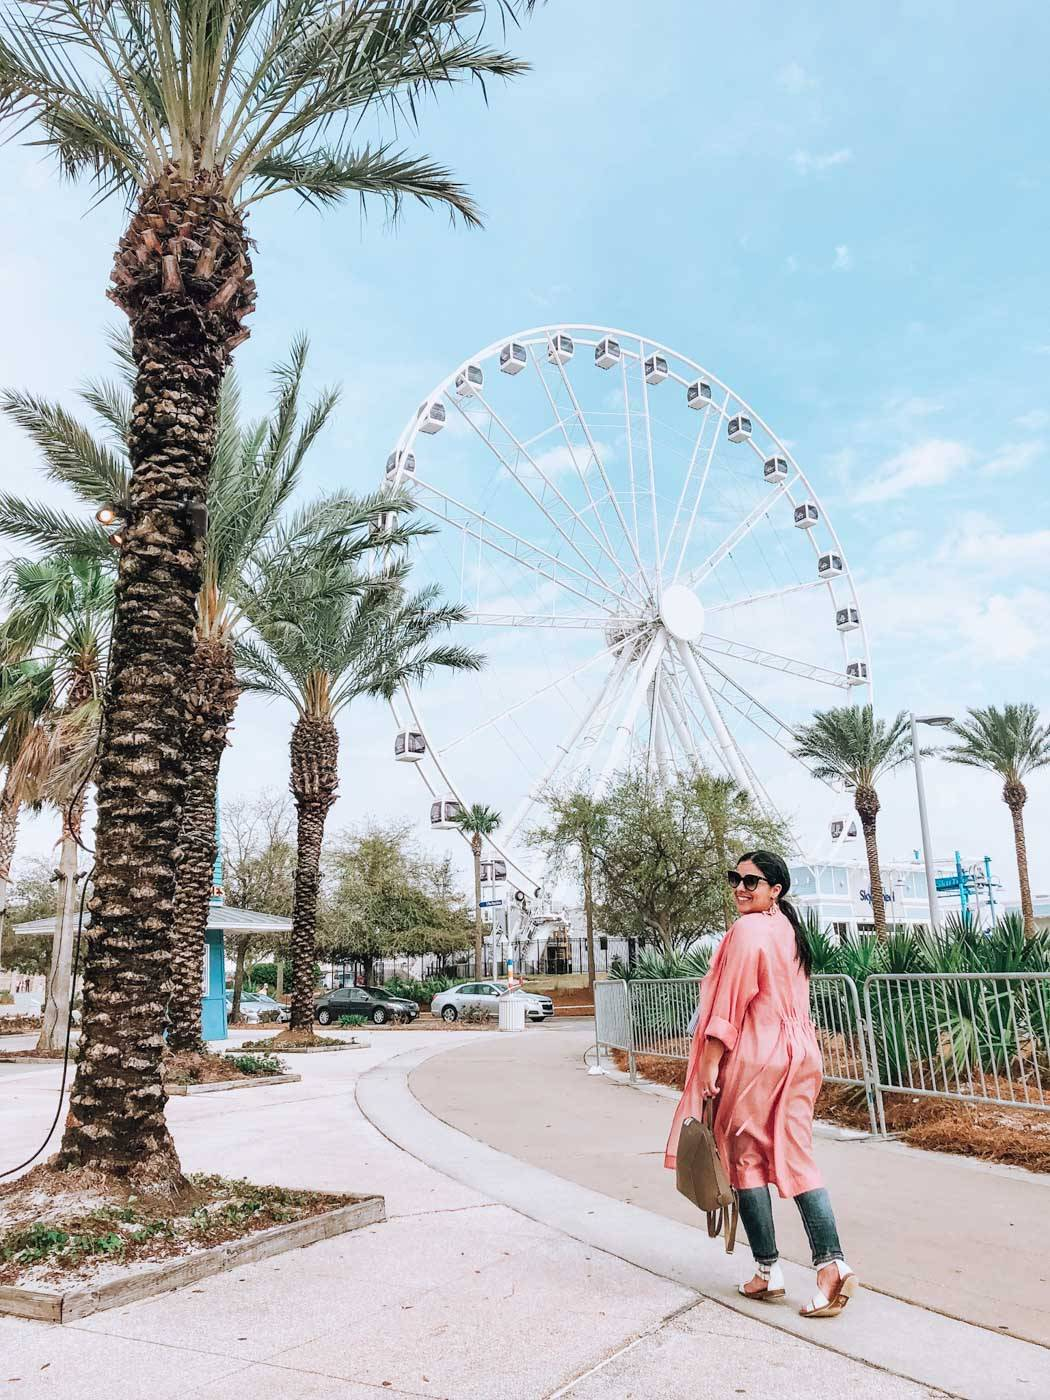 Looking for things to do in Panama City beach? We have you covered- with places to go, things to see and where to eat- including St Andrew's State Park. #VisitFlorida #Panamacitybeach